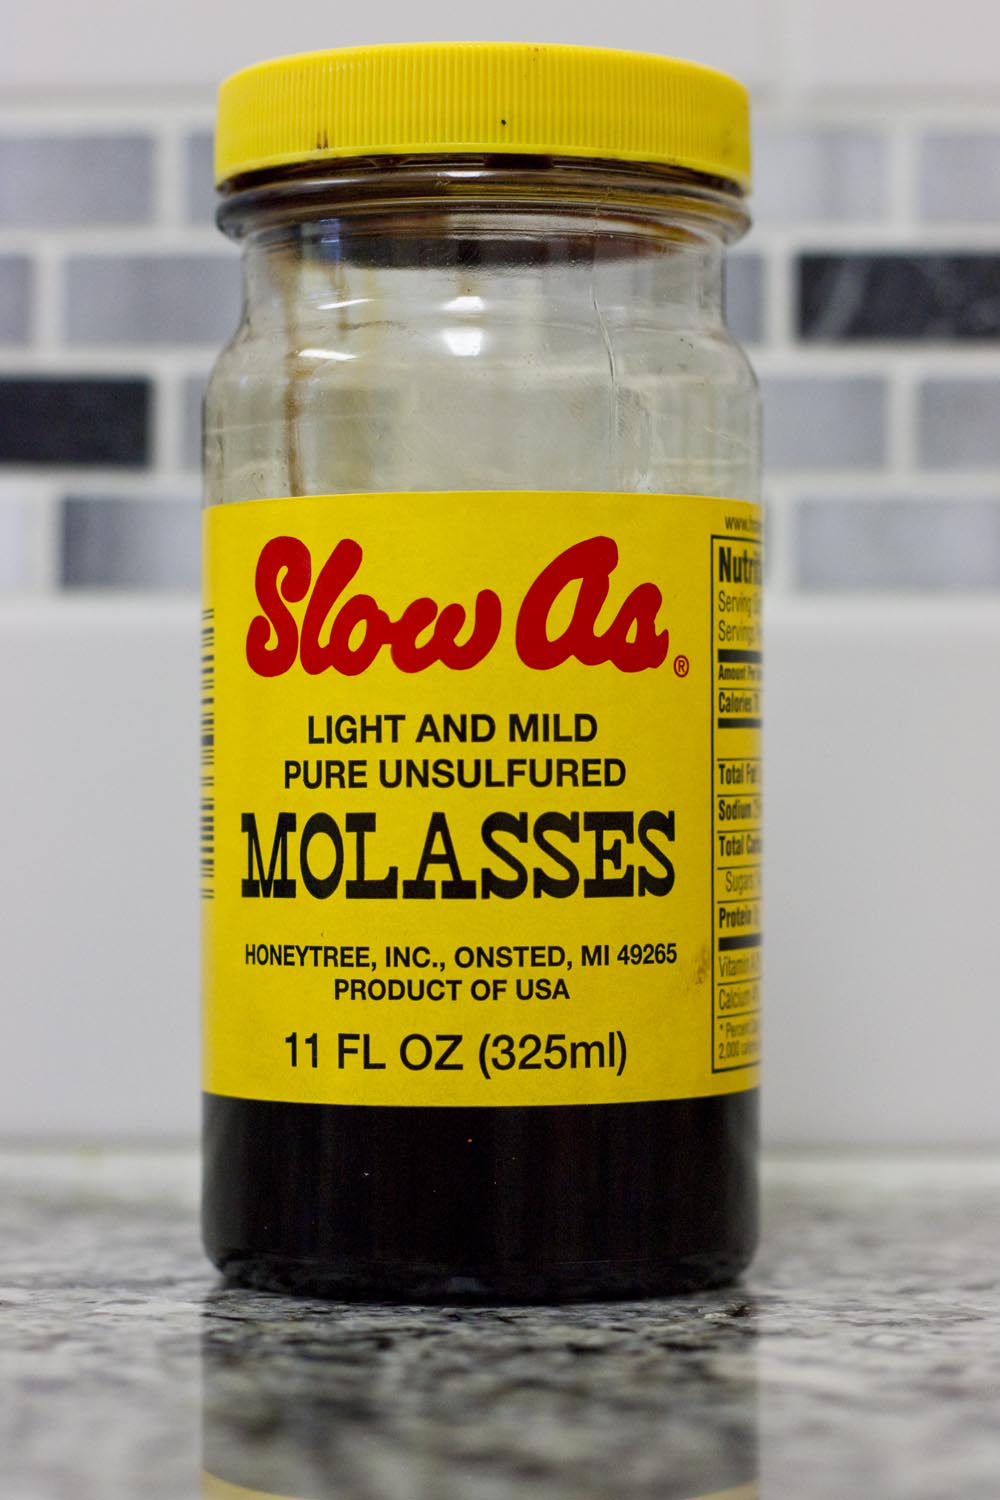 Molasses is the least refined common sweetener made from sugar cane, still retains some nutrients and is much less sweet tasting than sugar crystals.